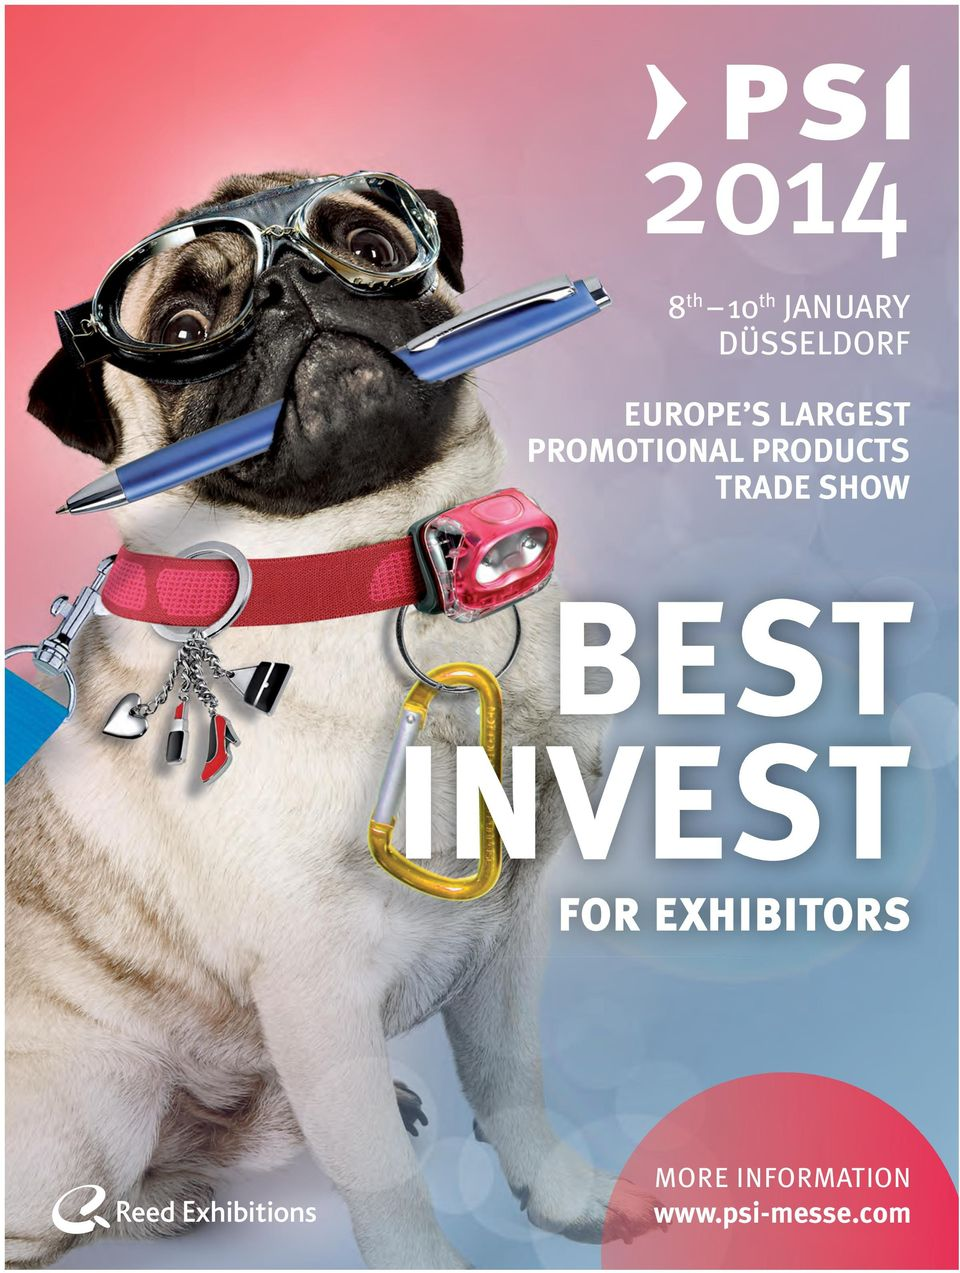 INVEST FOR EXHIBITORS MORE INFORMATION www.